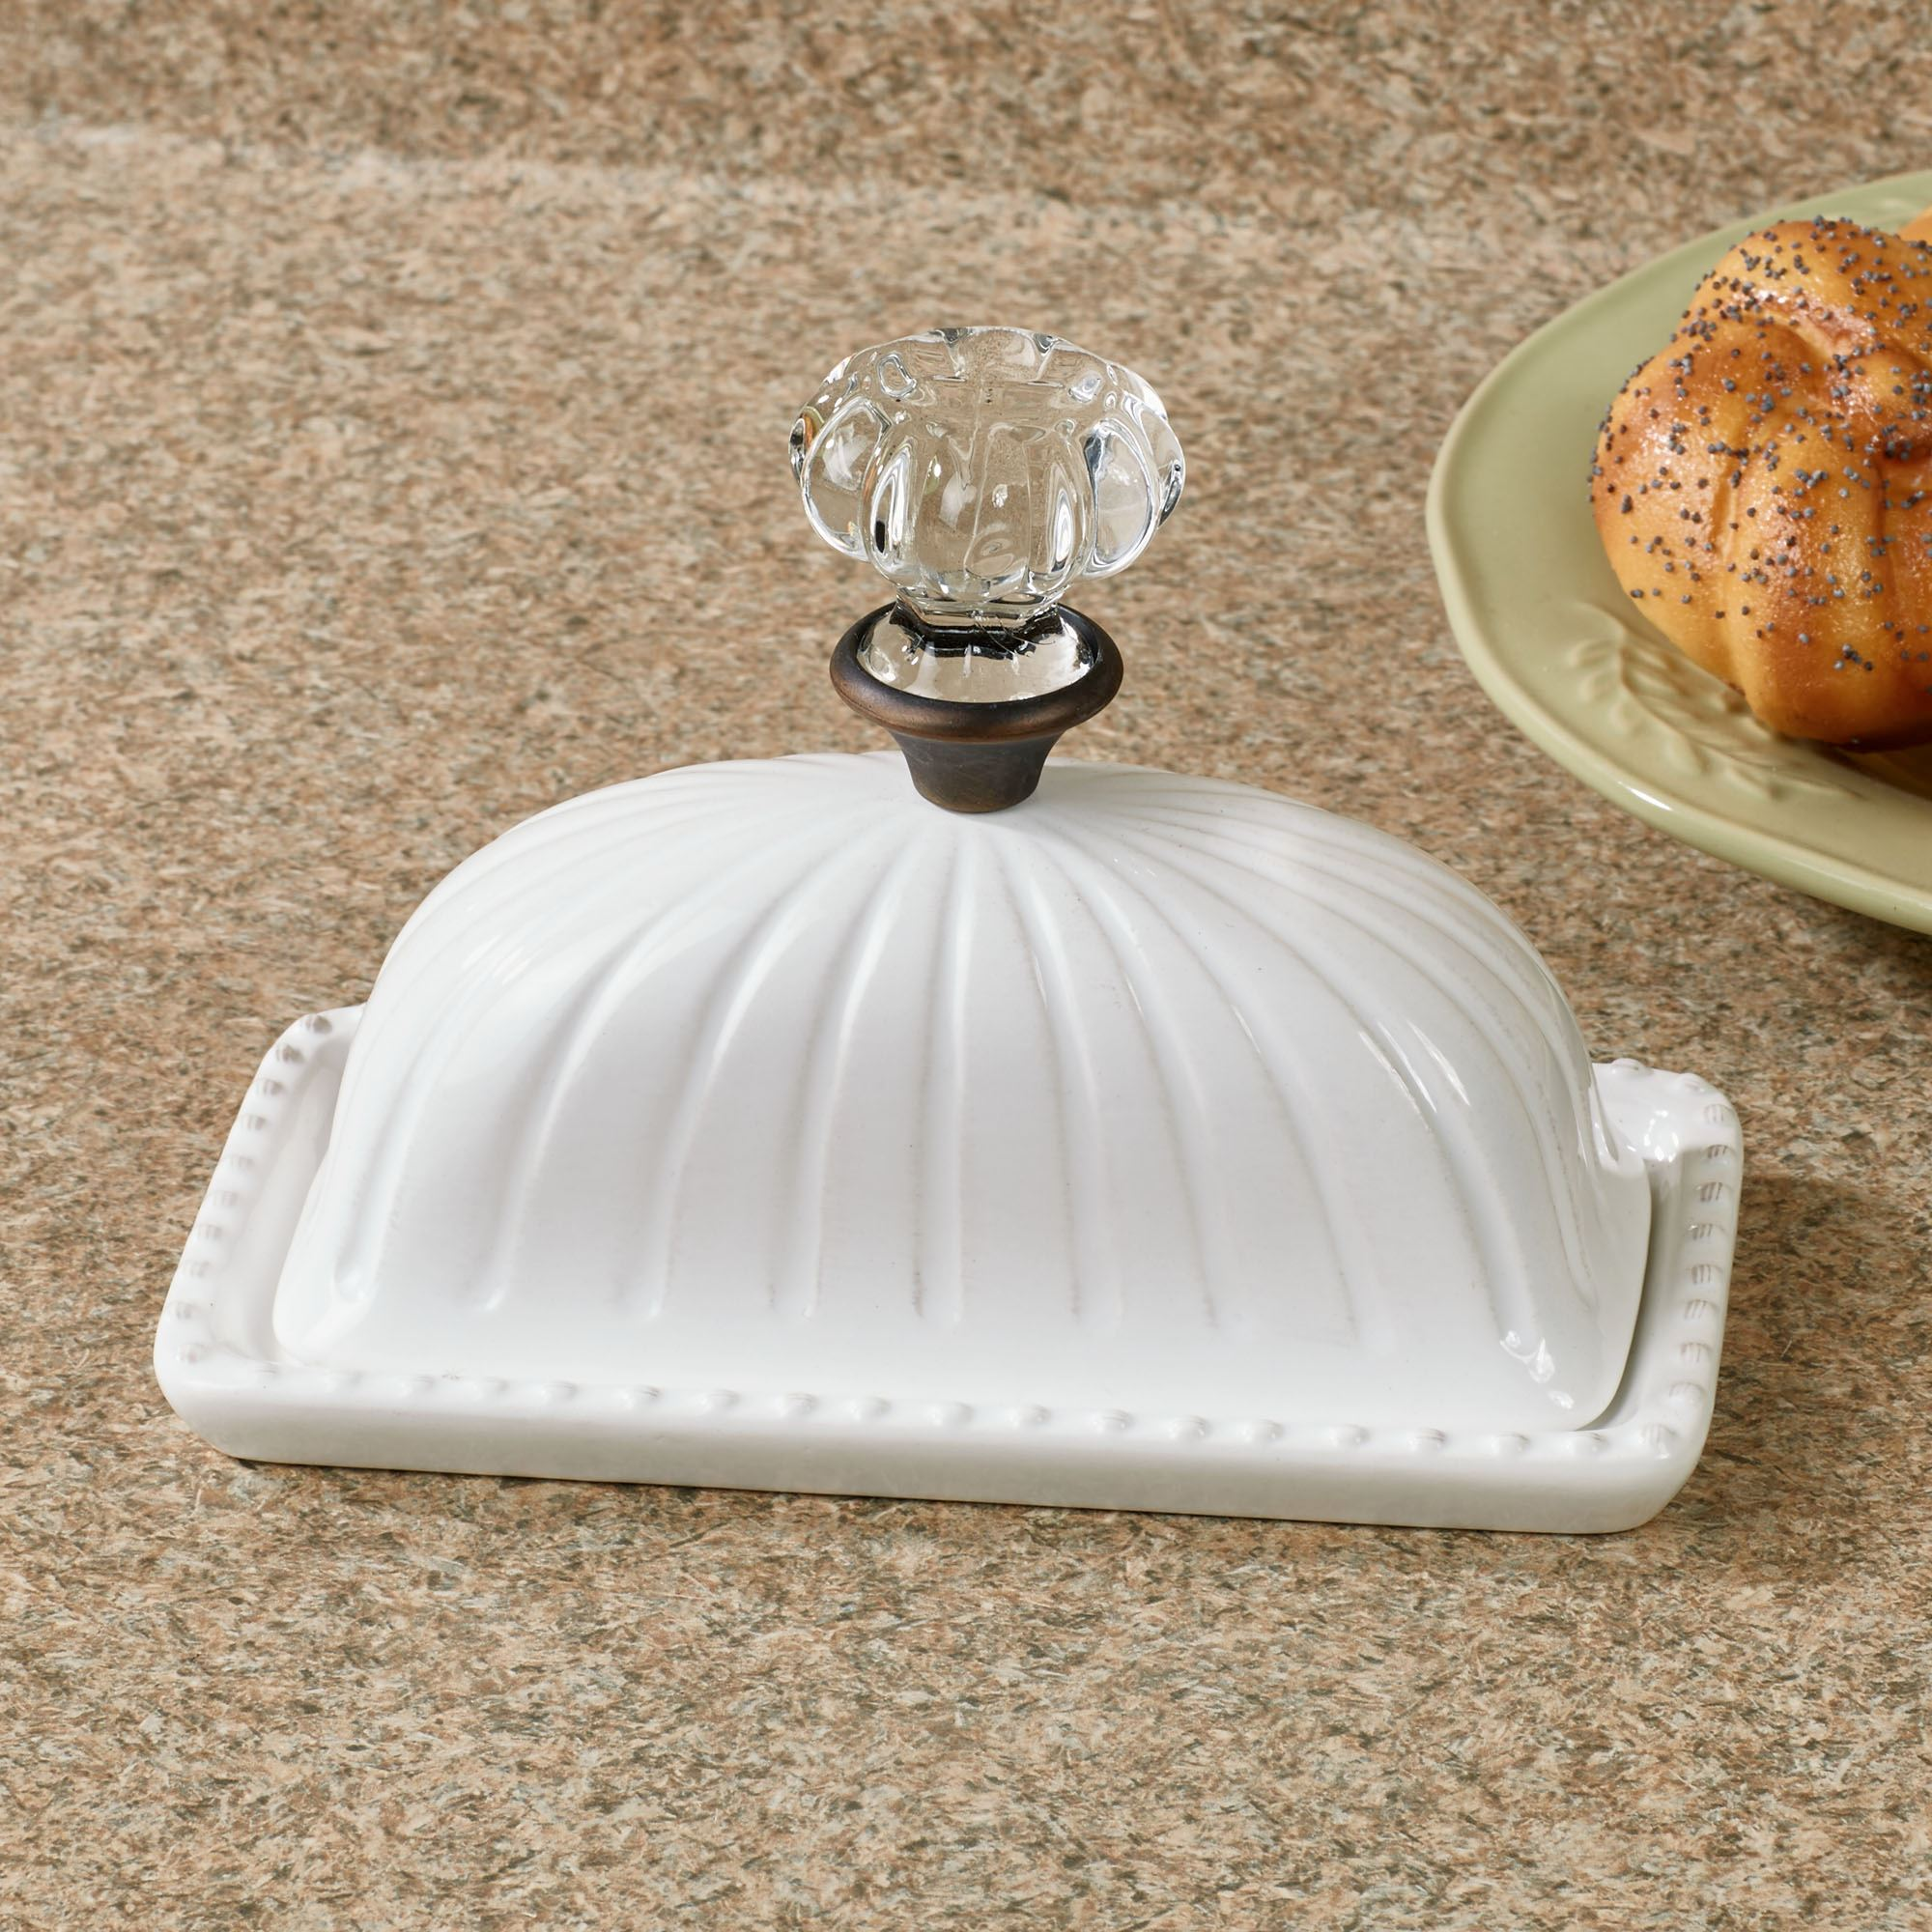 7 White Ceramic Speckled Covered Butter Dish